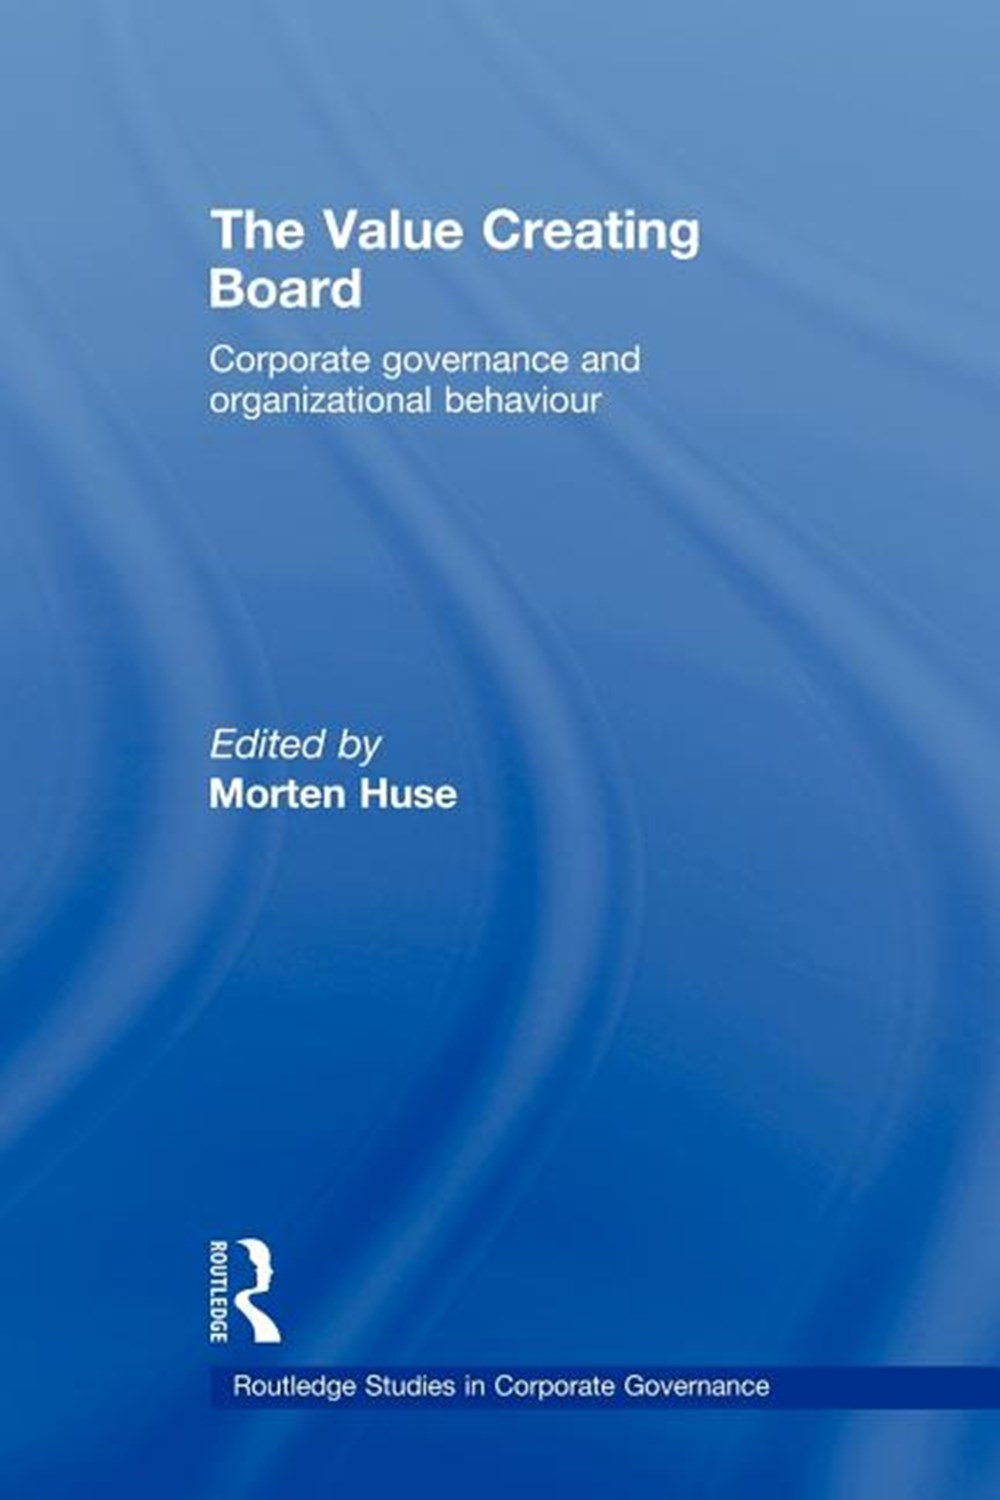 Value Creating Board Corporate Governance and Organizational Behaviour